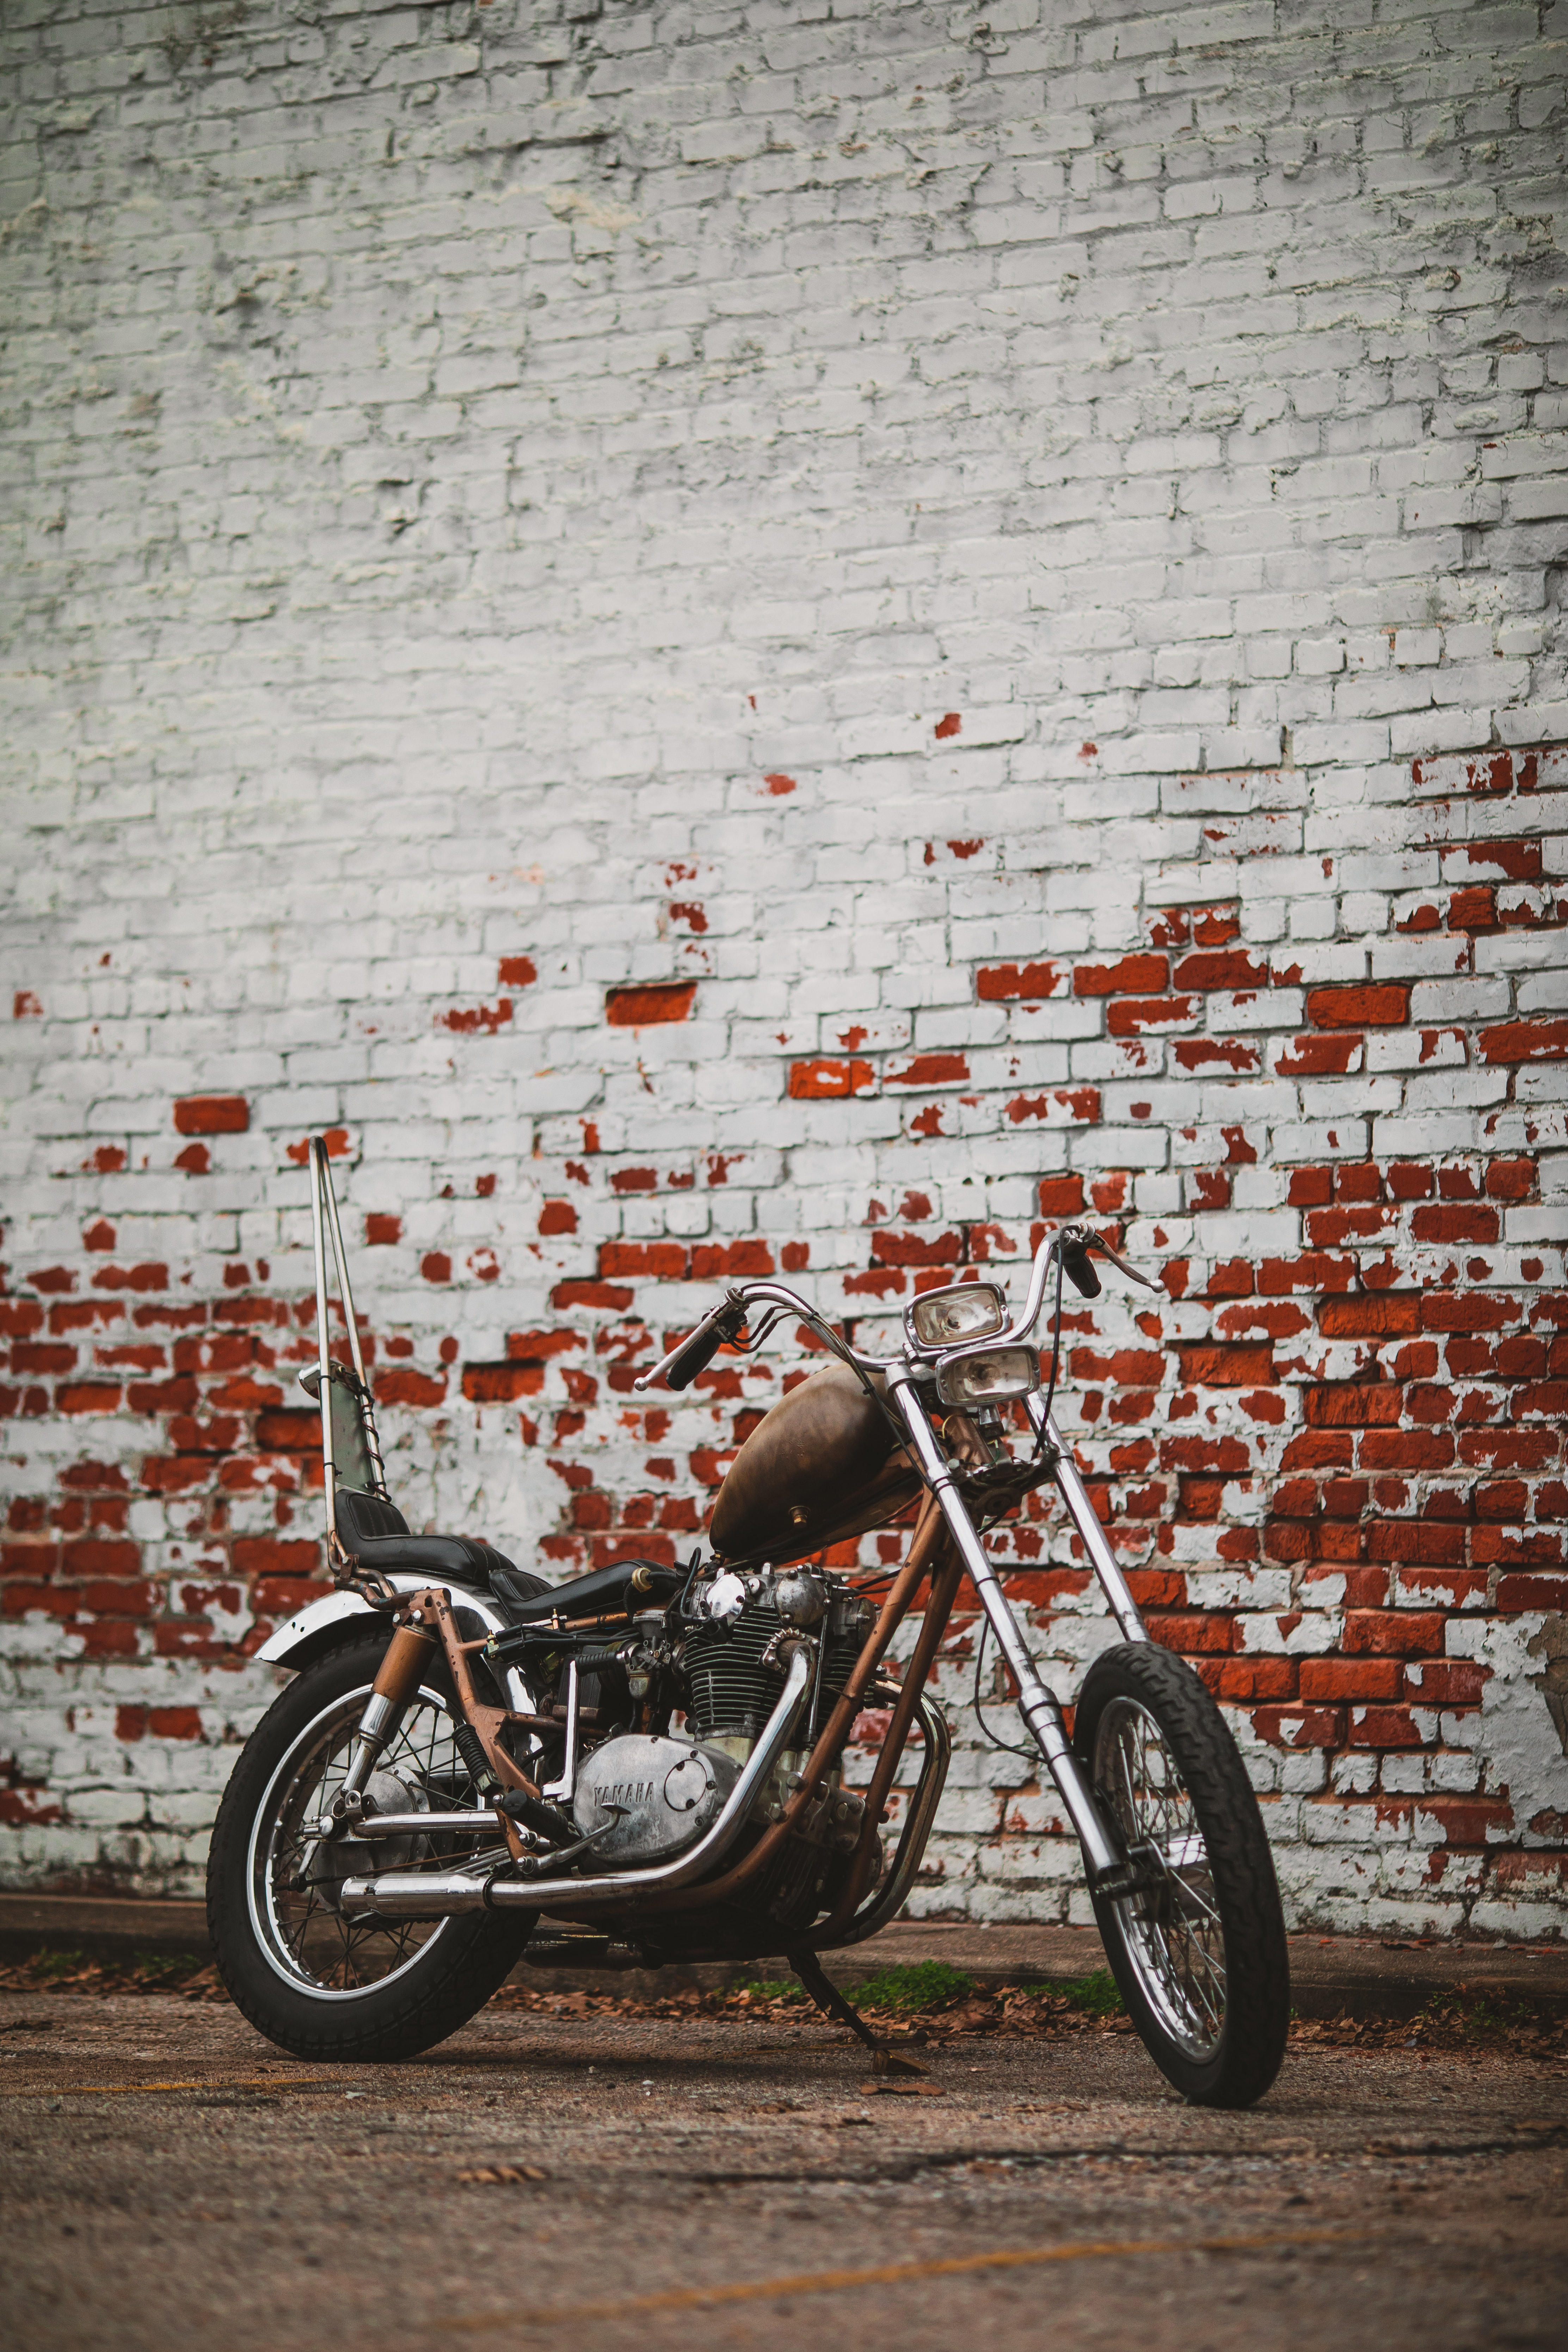 brown and black motorcycle beside brown and red wall